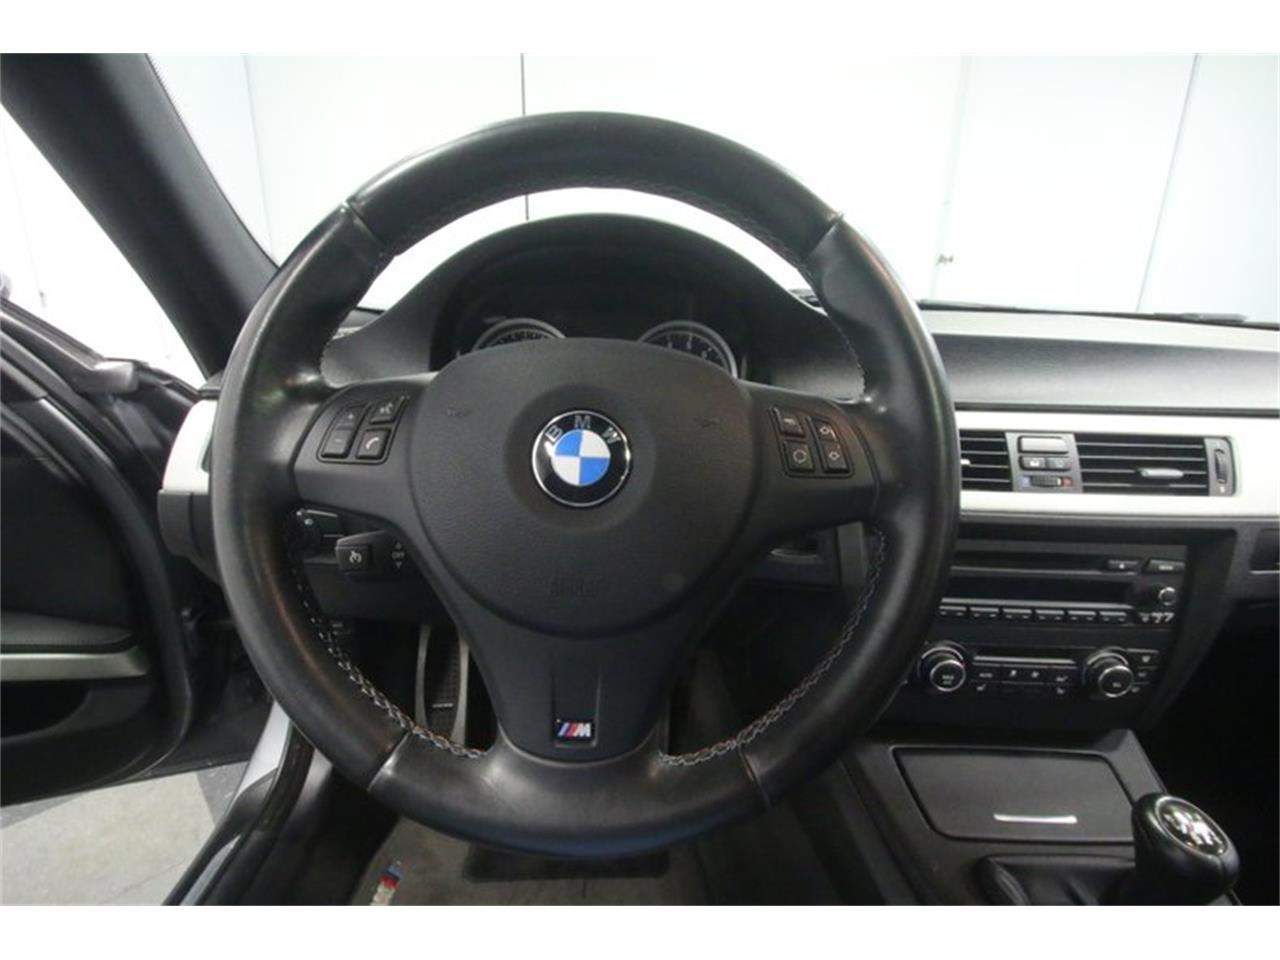 2010 BMW M3 for sale in Lithia Springs, GA – photo 43